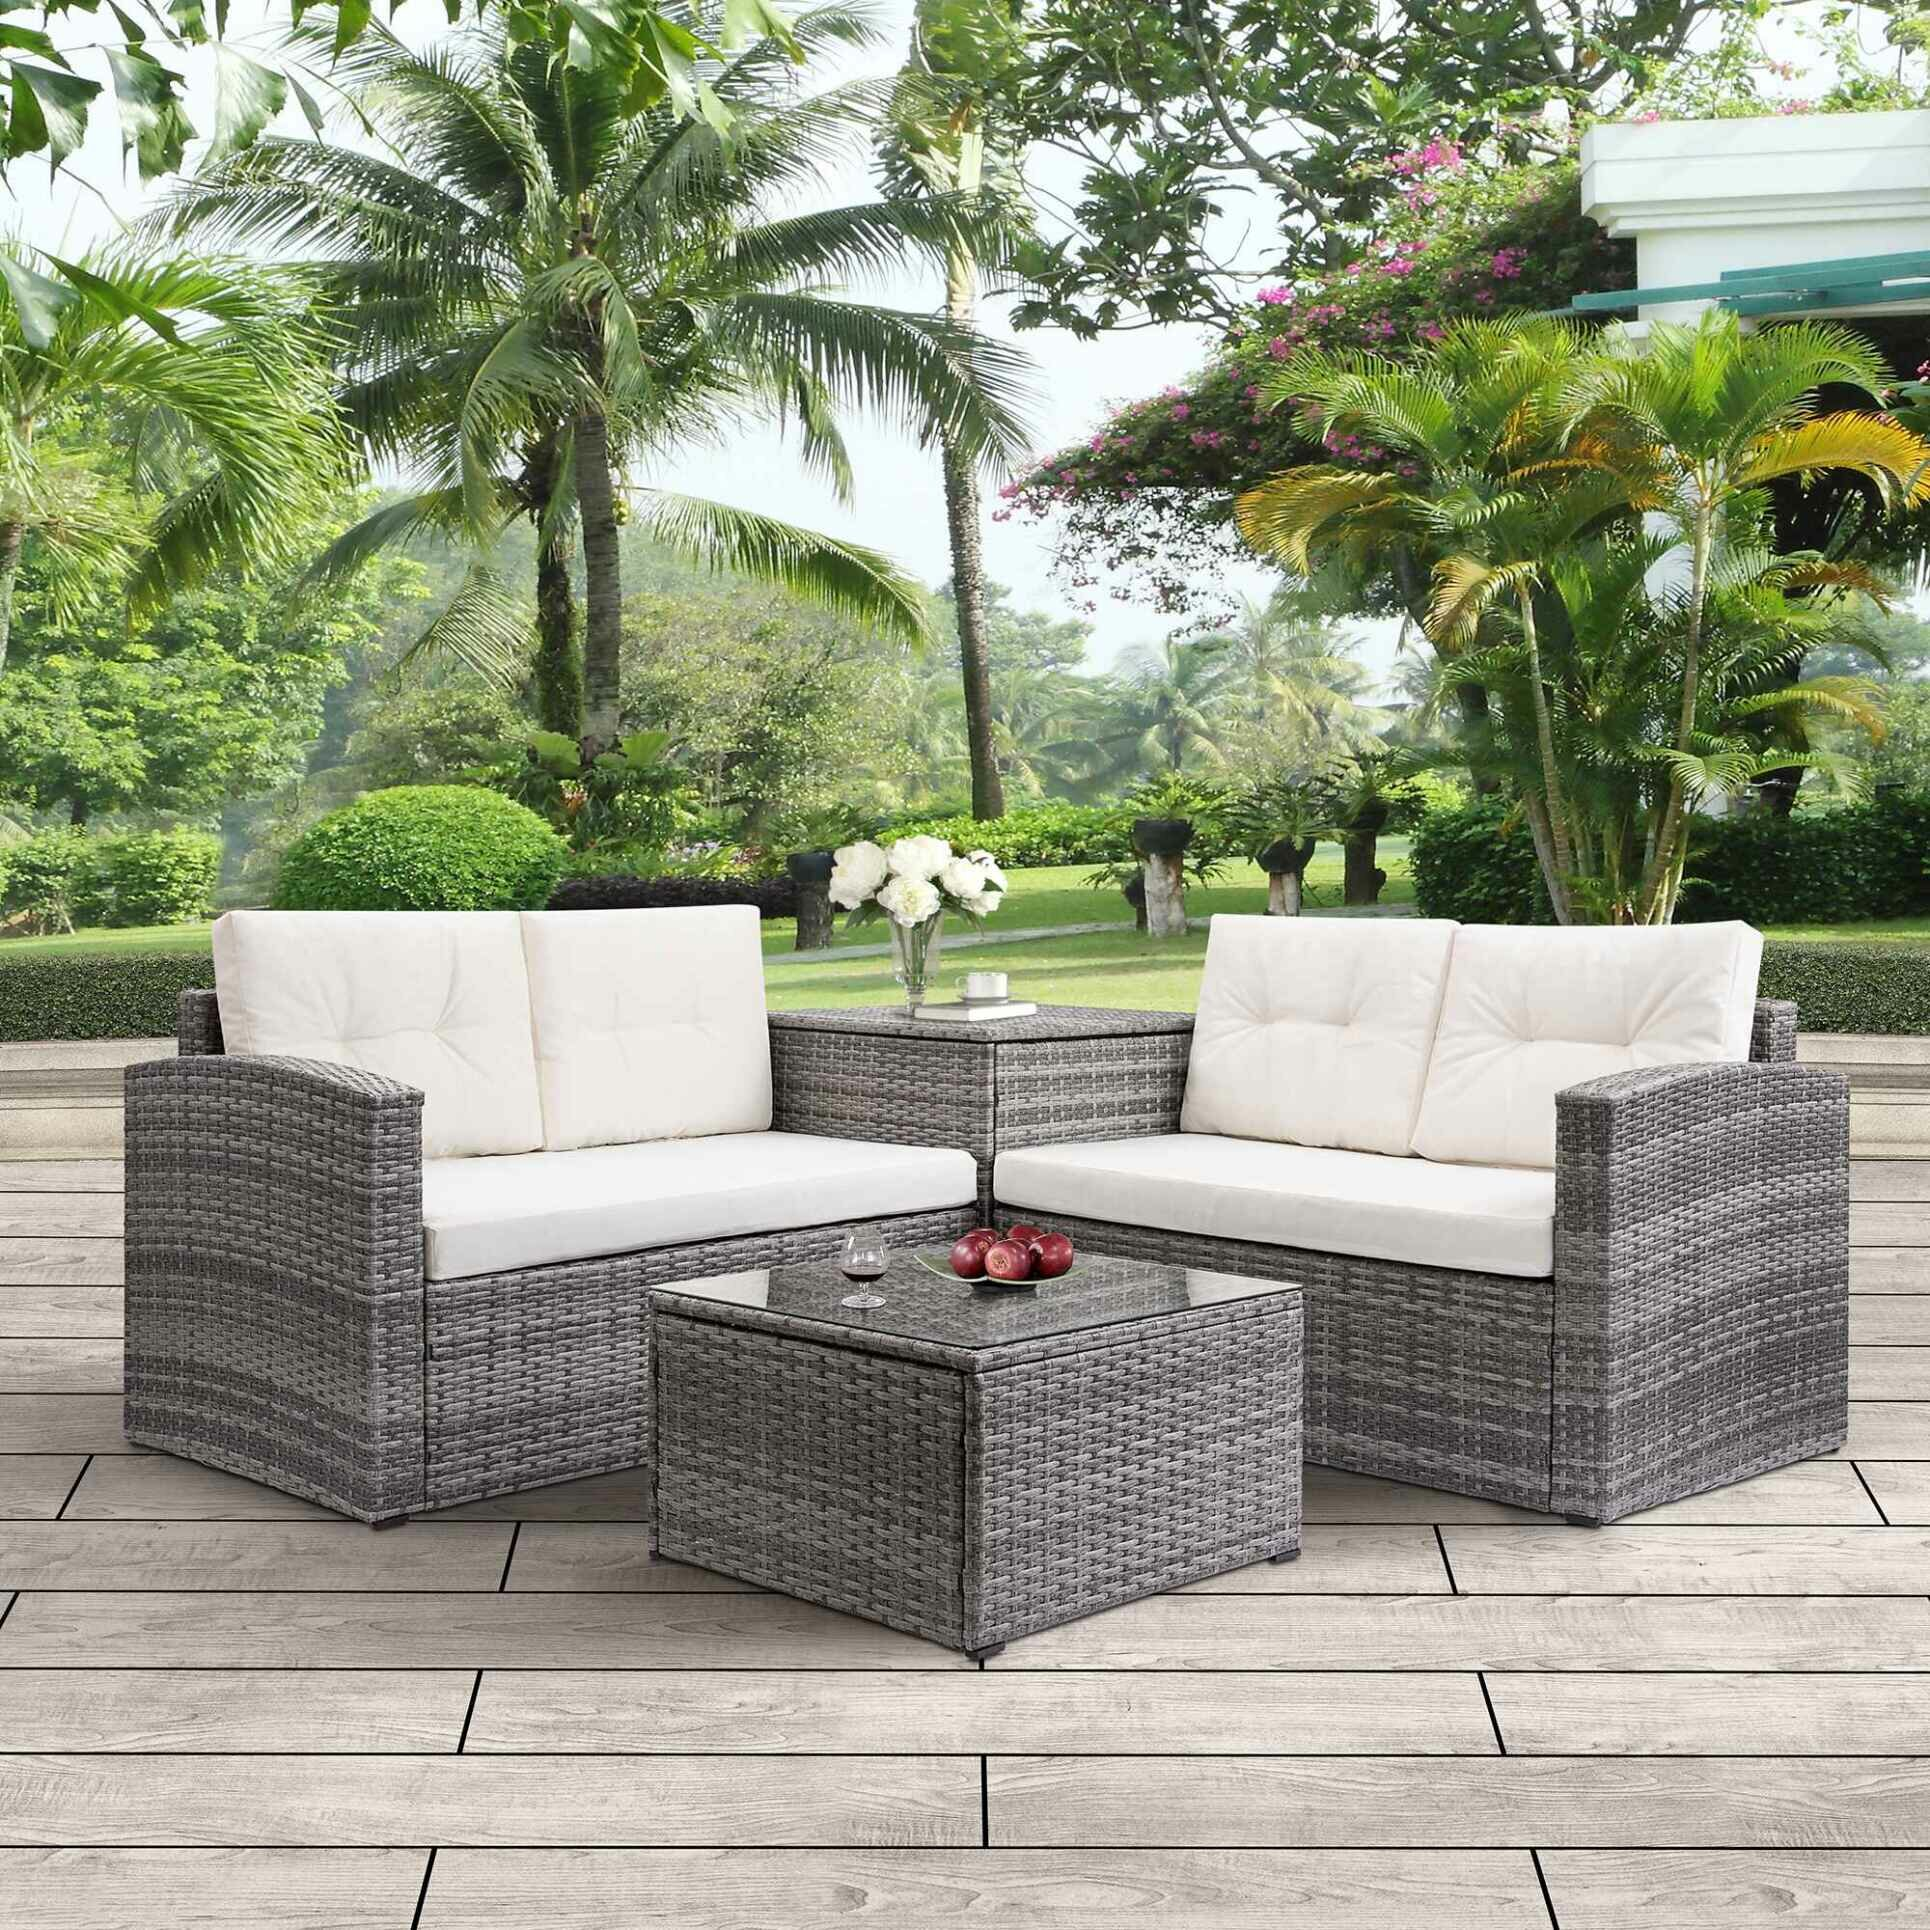 Merax 4 Piece Rattan Sofa Seating Group